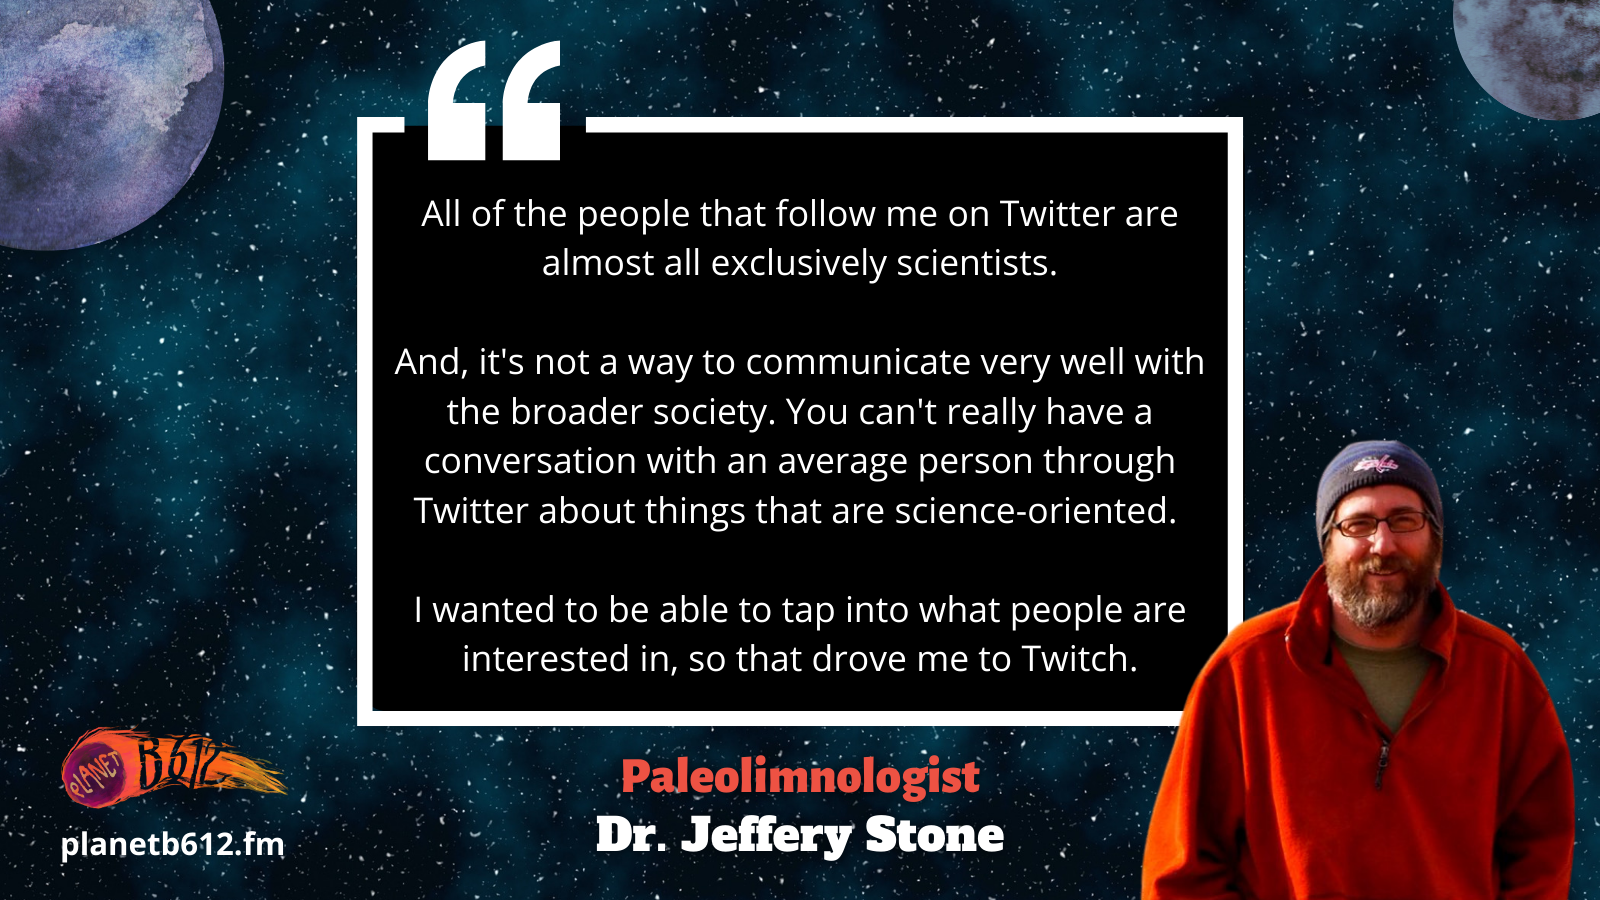 Dr. Stone talks about communicating science on Twitch